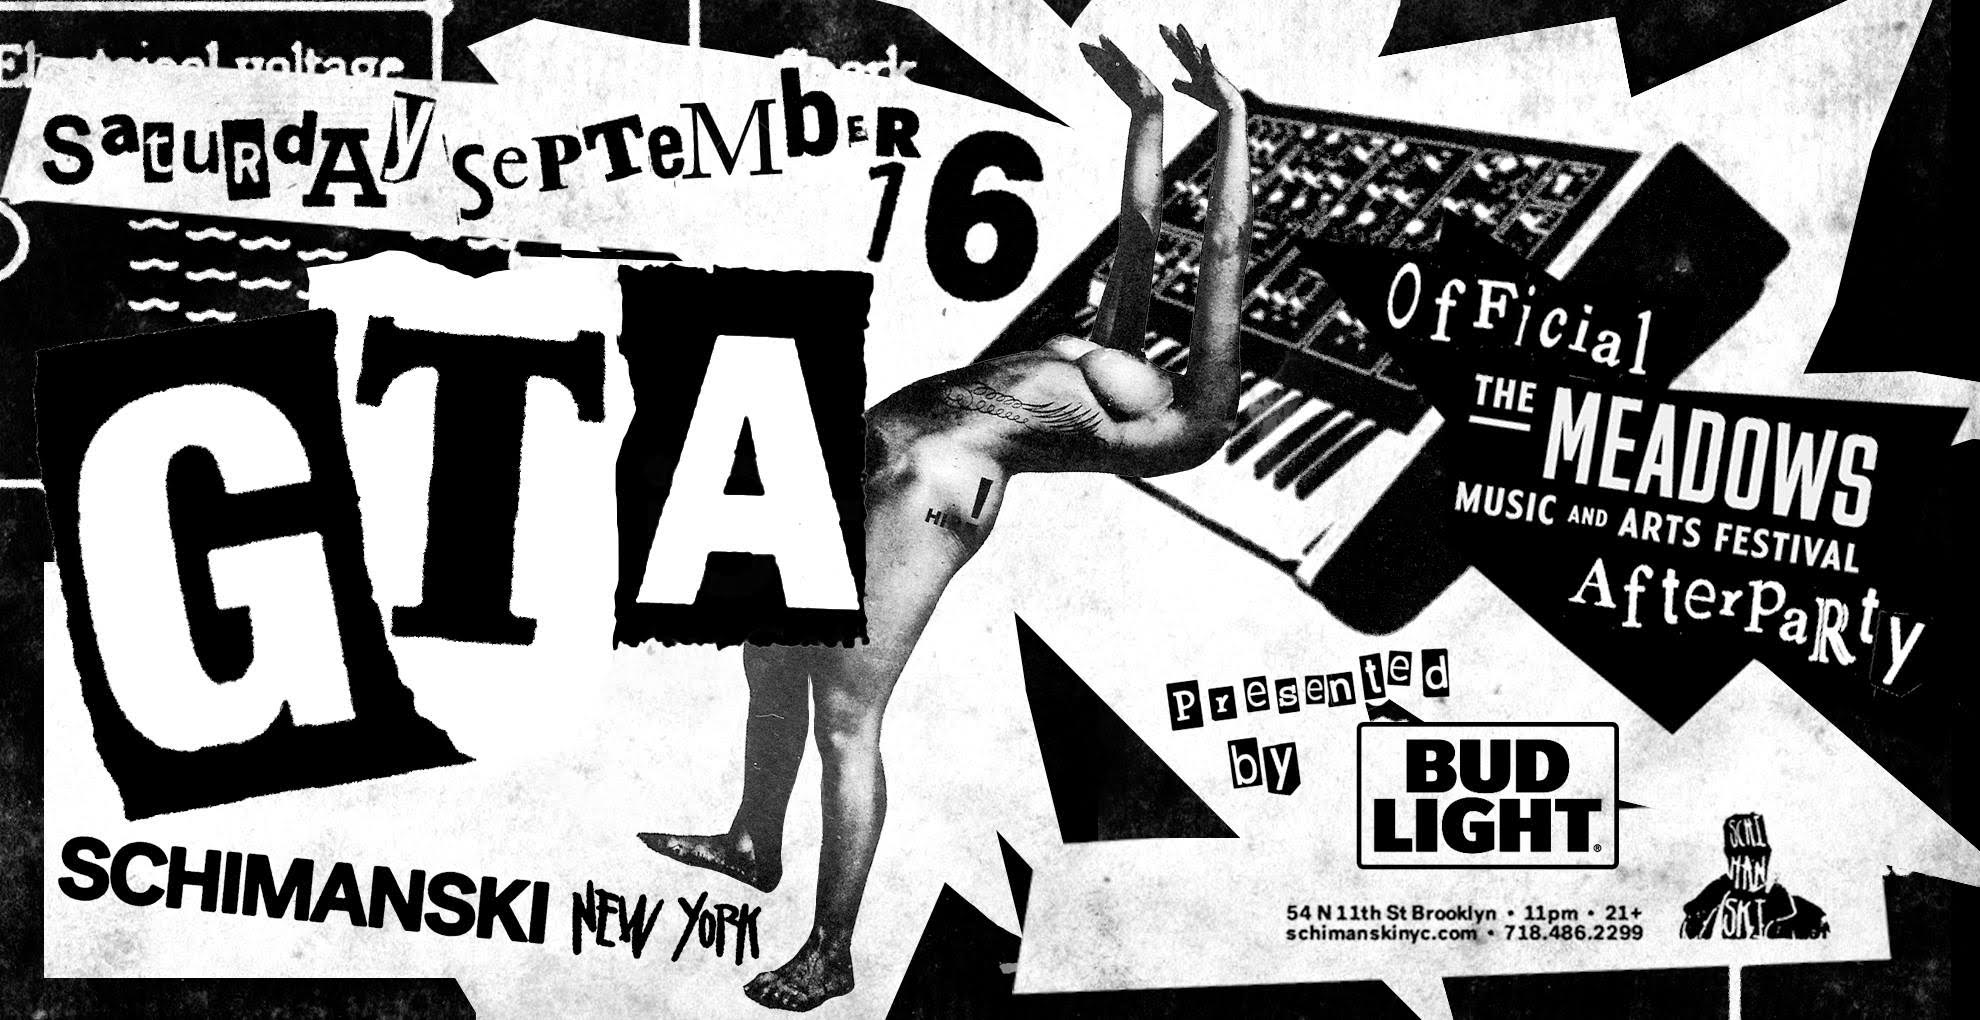 GTA show at Schimanski poster The Meadows after party